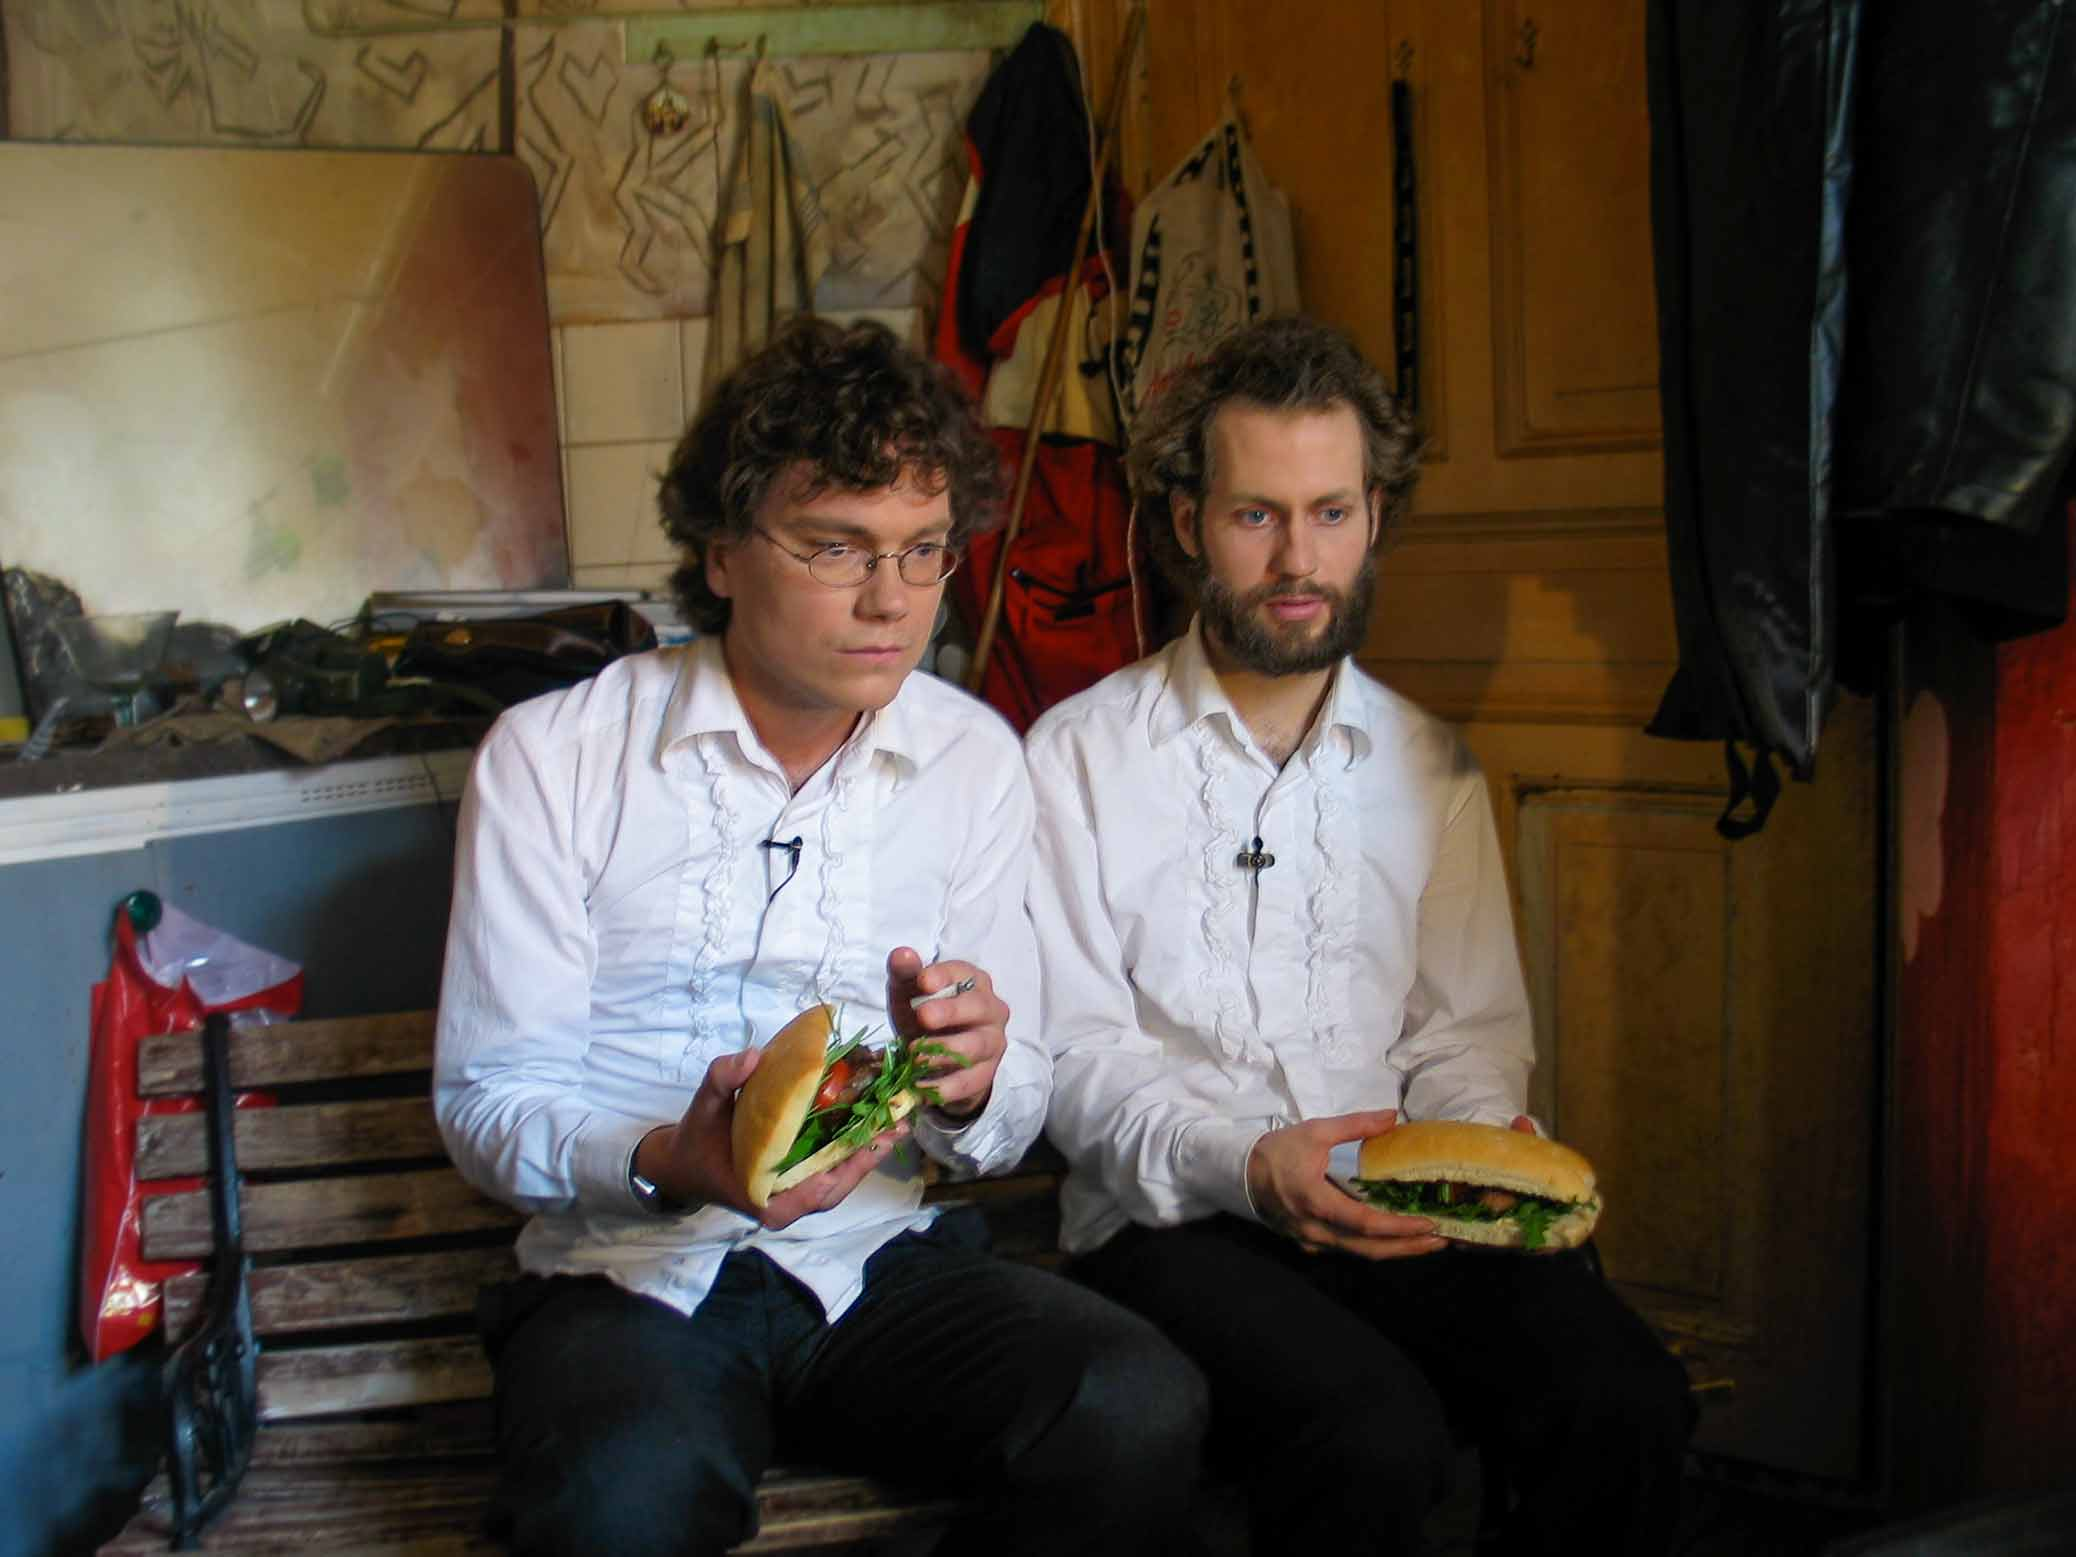 Cuisine Bizarre, video still, Frans Einarsson and Björn Perborg with sandwiches and cigarette.